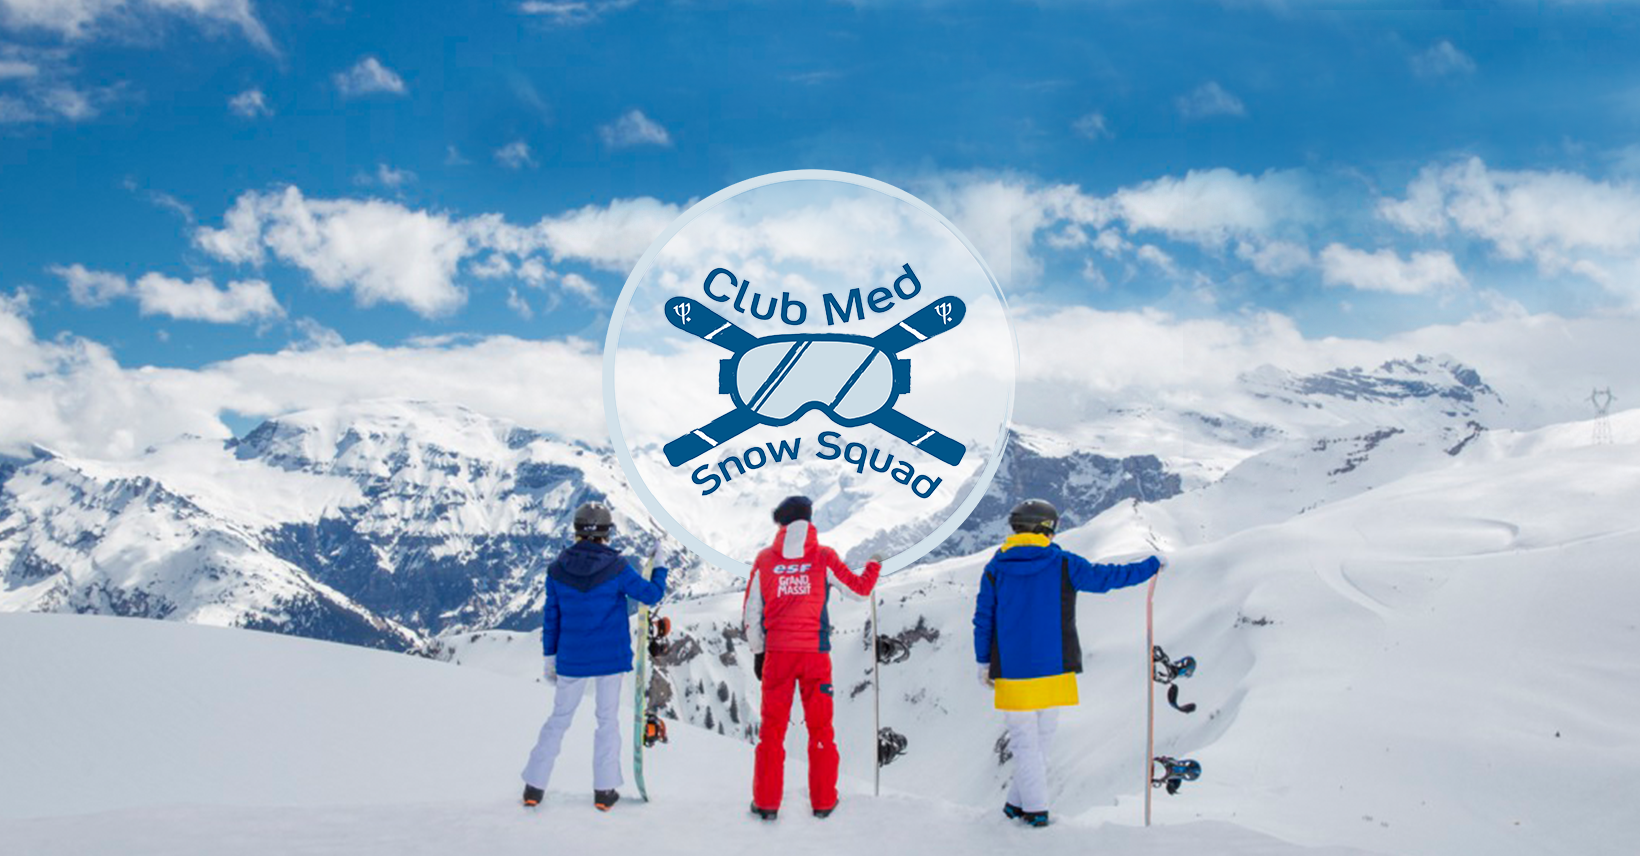 JOIN THE CLUB MED SNOW SQUAD FACEBOOK GROUP! - Fresh mountain air, powder snow, unique apres experiences, and gourmet mountain food...if these thing get your heart racing, you're in the right place! Join the Club Med Snow Squad and chat with like-minded snow holiday lovers, receive snow holiday tips, insider knowledge to our resorts, prizes, exclusive deals, and more!